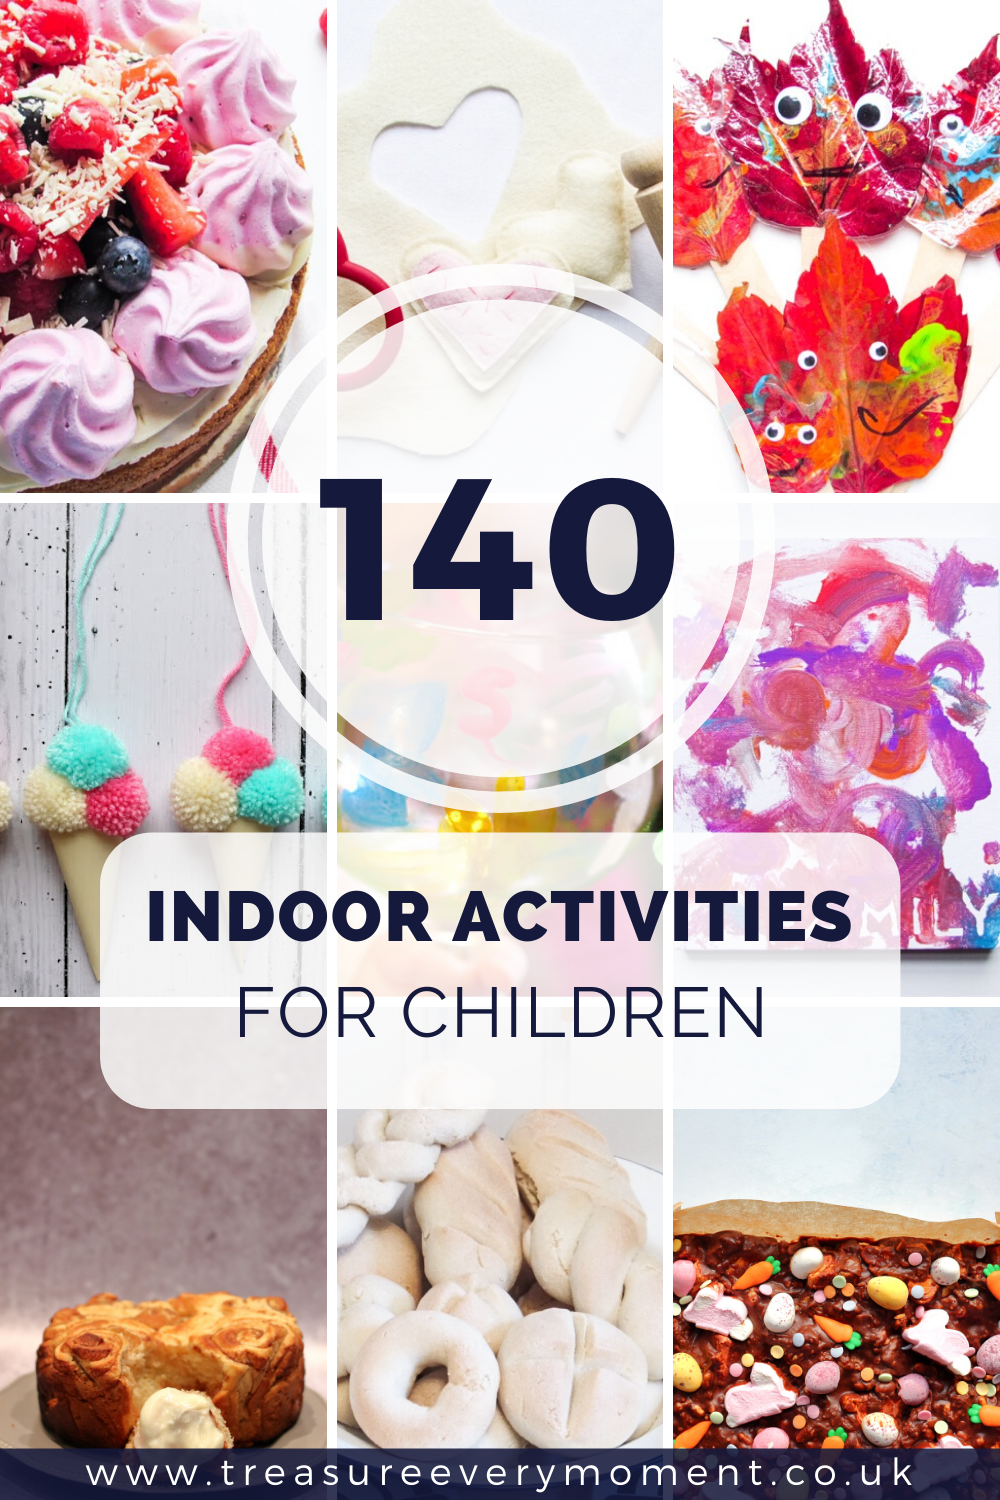 CHILDREN: 140 Indoor Activities for Hours of Entertainment